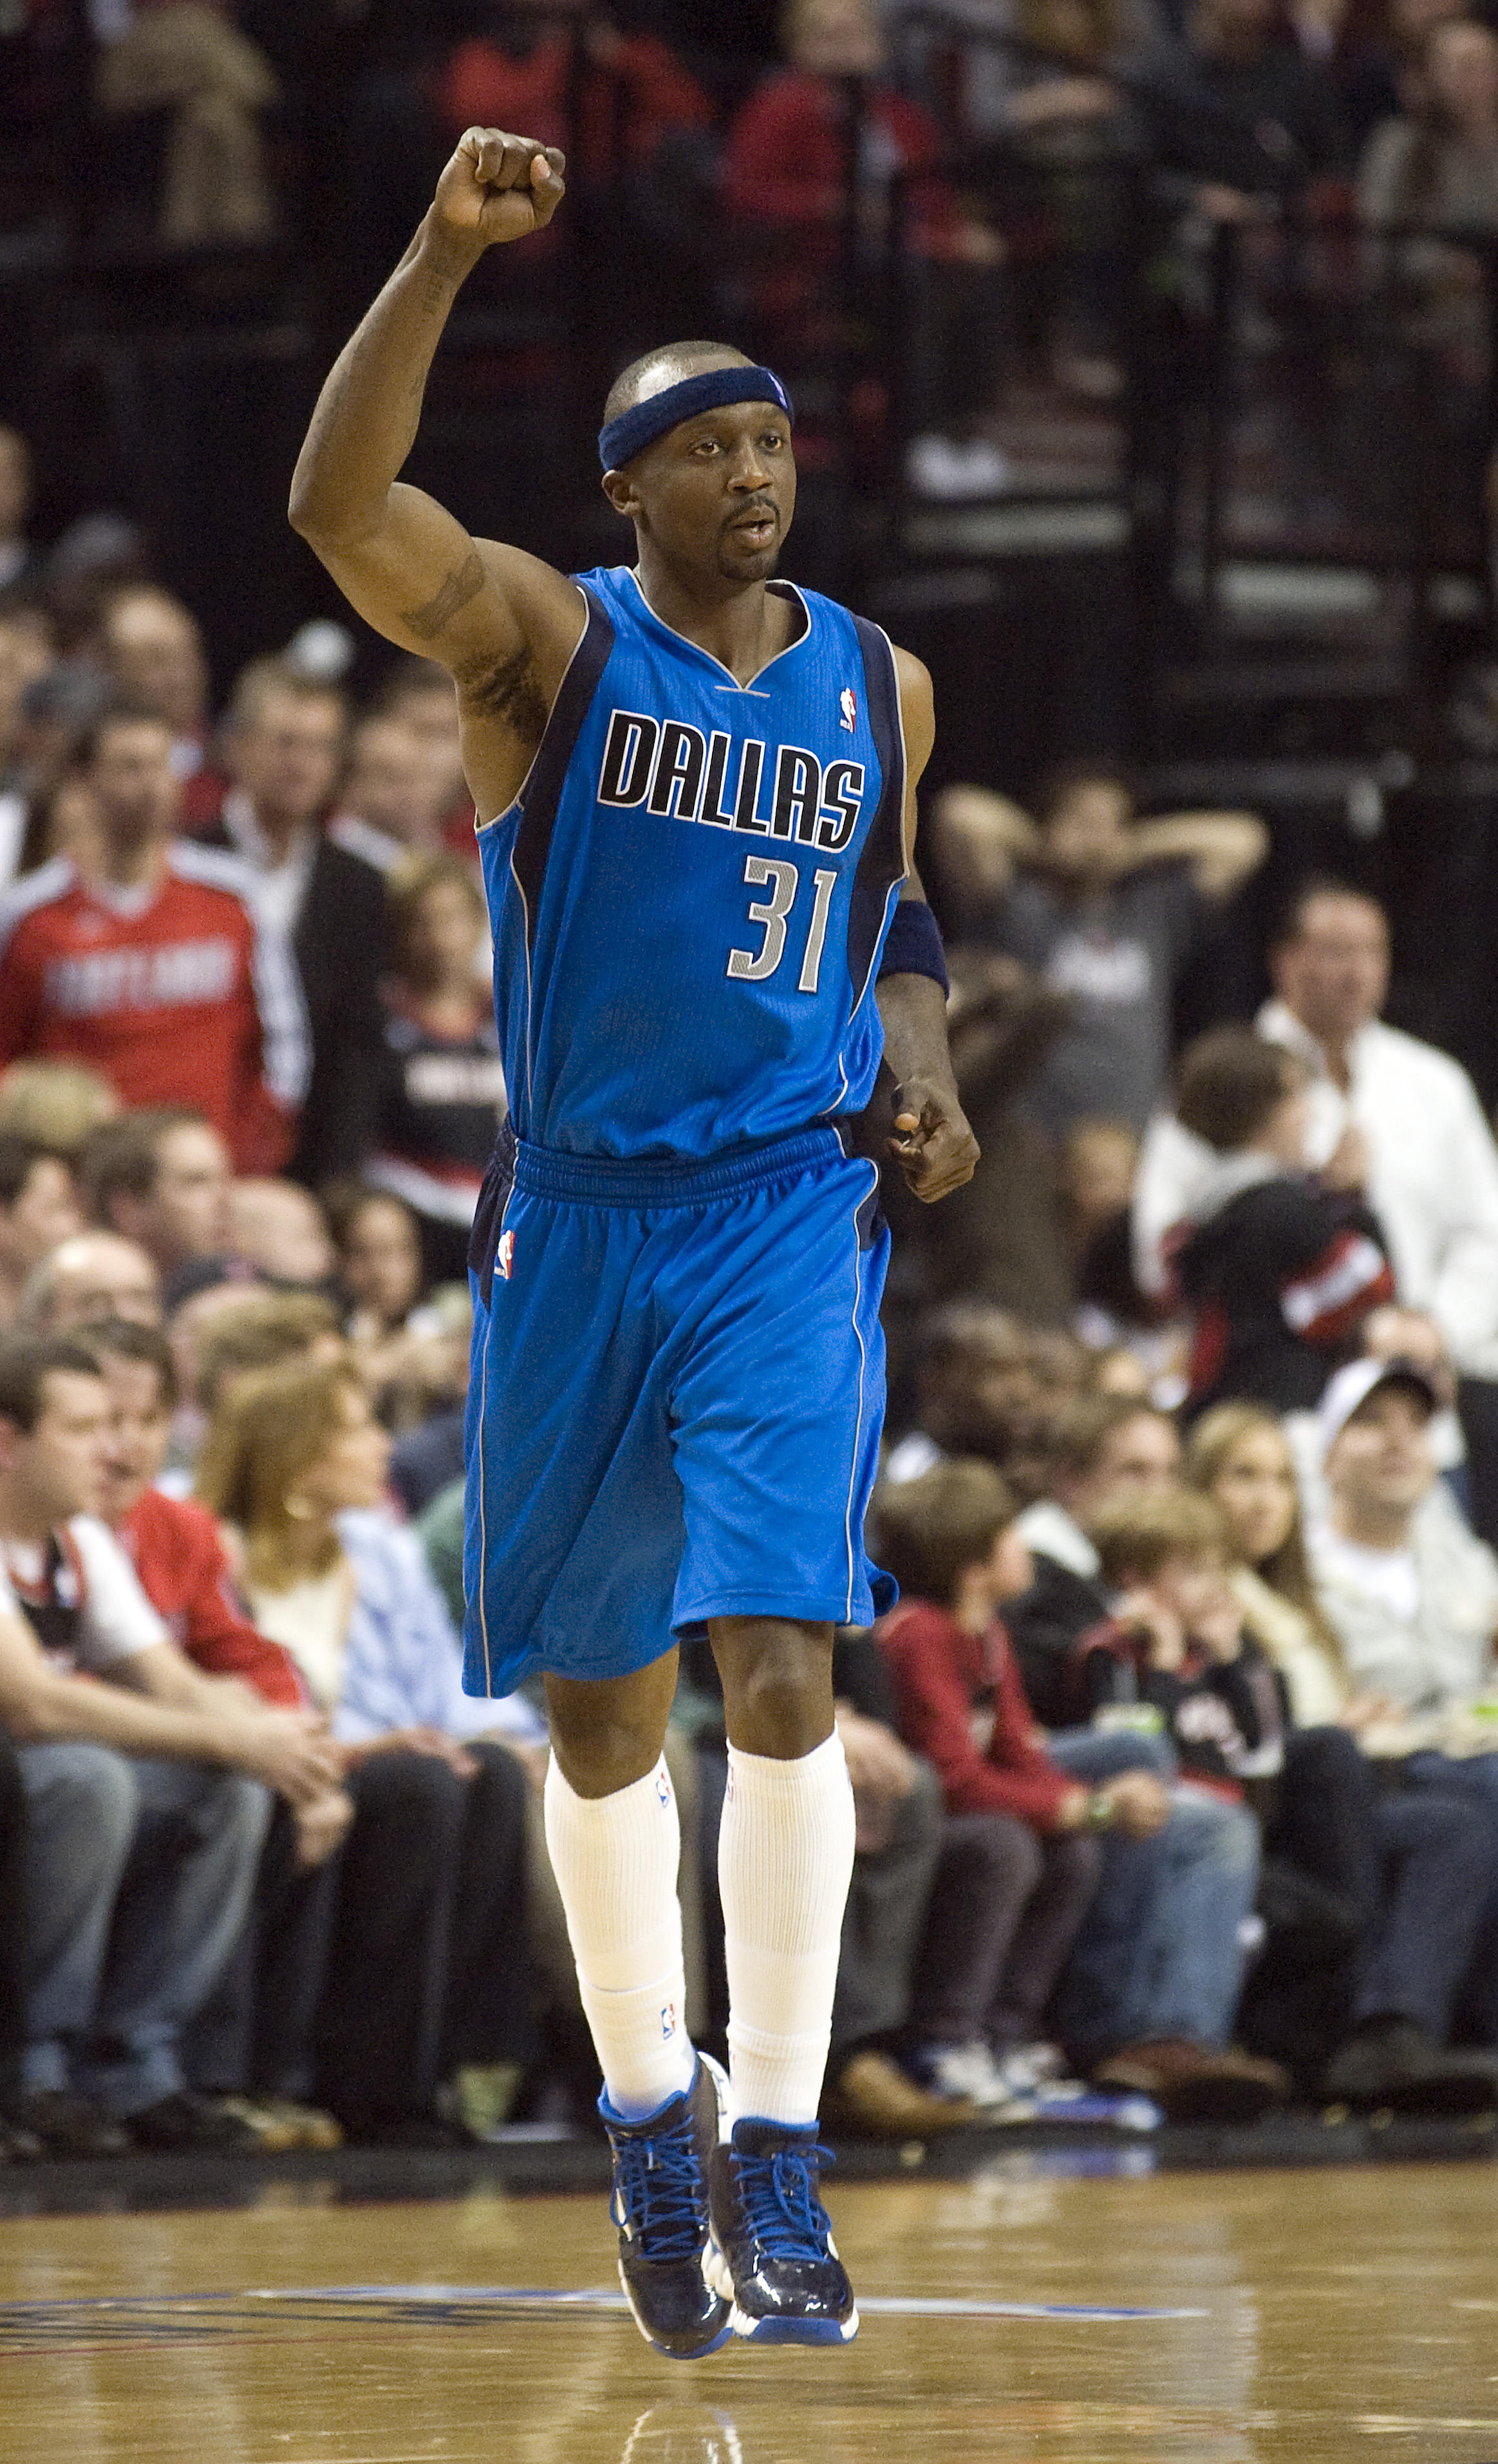 PORTLAND, OR - APRIL 28: Jason Terry #31 of the Dallas Mavericks celebrates after hitting a shot during the fourth quarter of Game Six of the Western Conference Quartefinals against the Portland Trail Blazers in the 2011 NBA Playsoffs on April 28, 2011 at